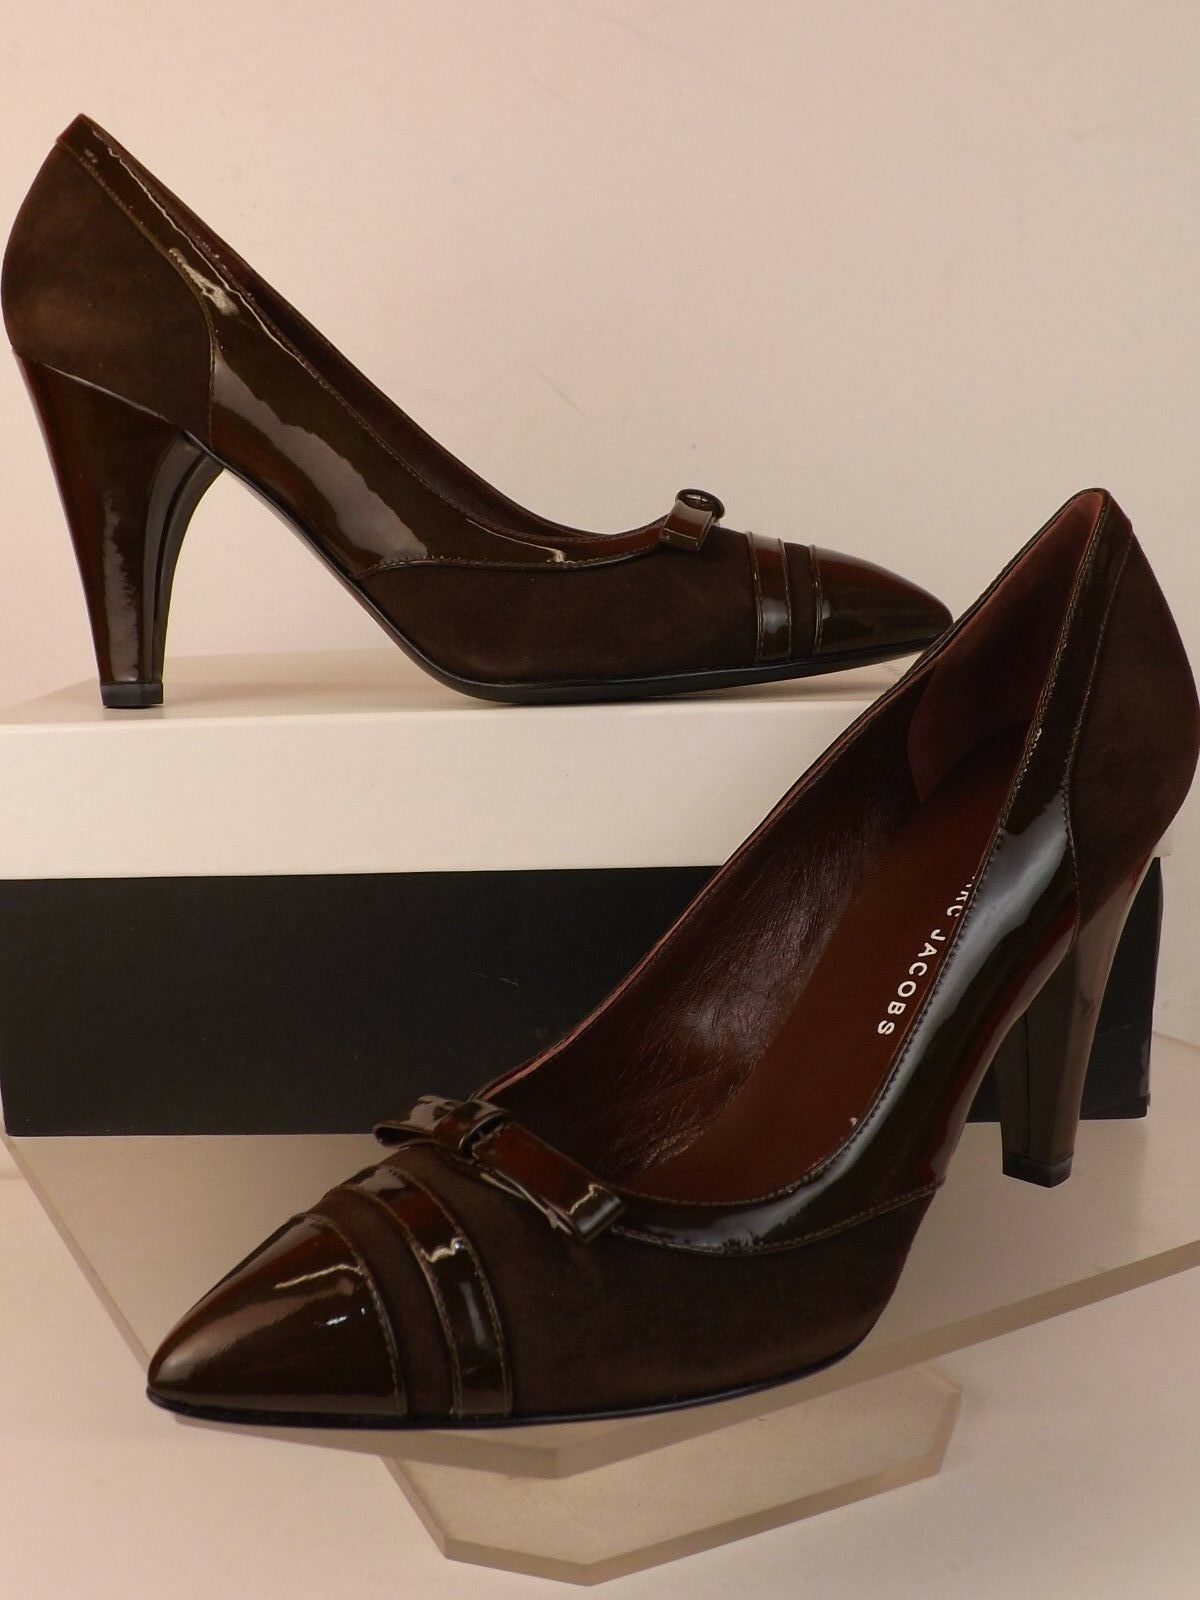 NIB MARC MARC MARC BY MARC JACOBS BROWN SUEDE PATENT LEATHER BOW POINTY TOE PUMPS 39.5 9c5de7